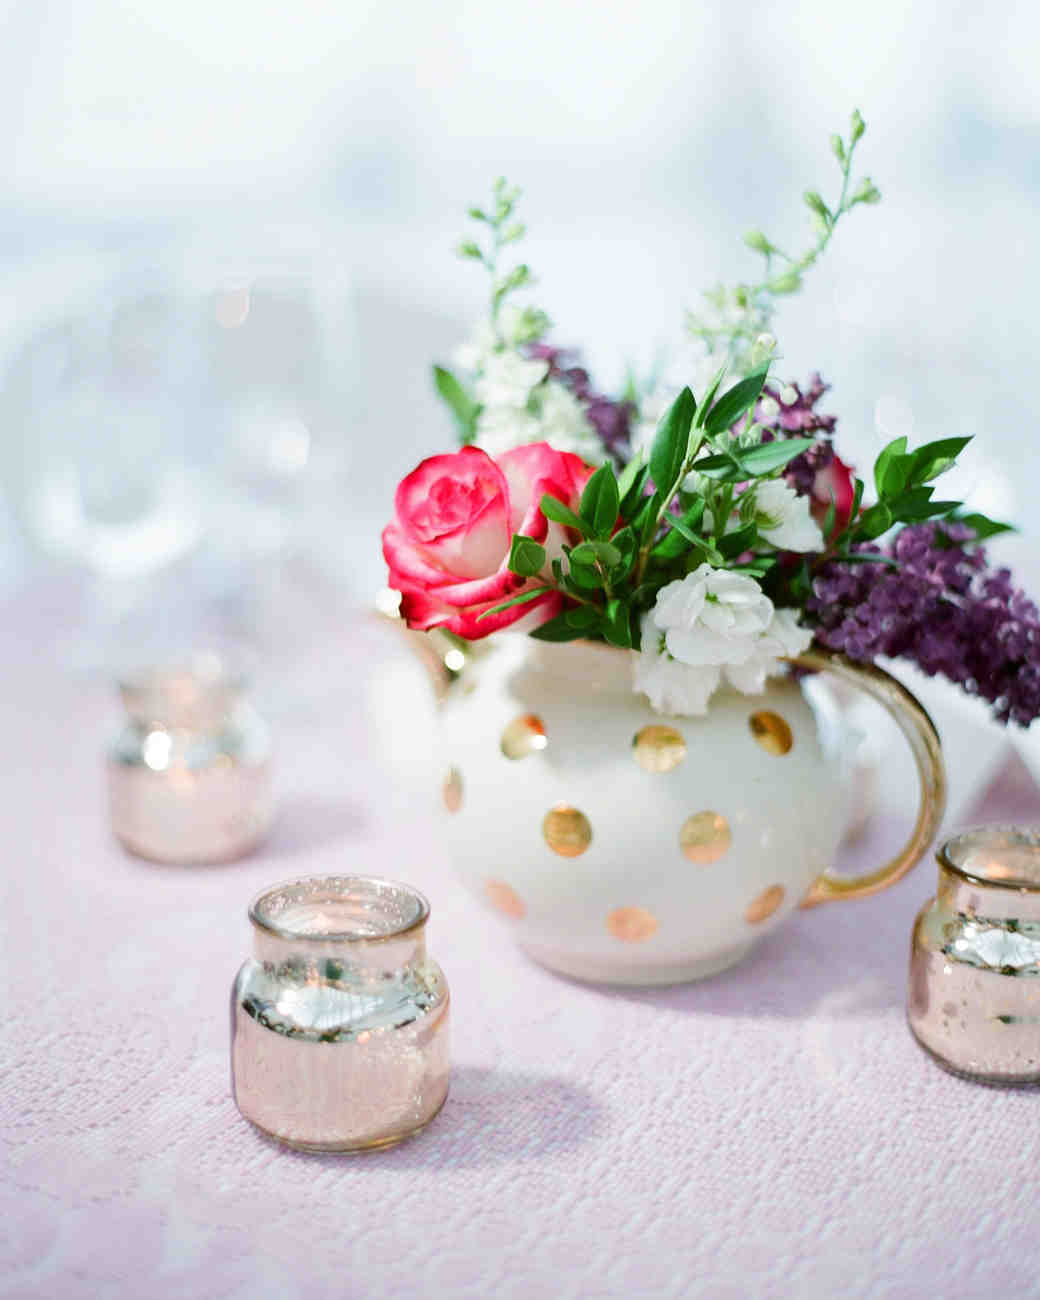 Wedding Flower Center Pieces: Floral Wedding Centerpieces